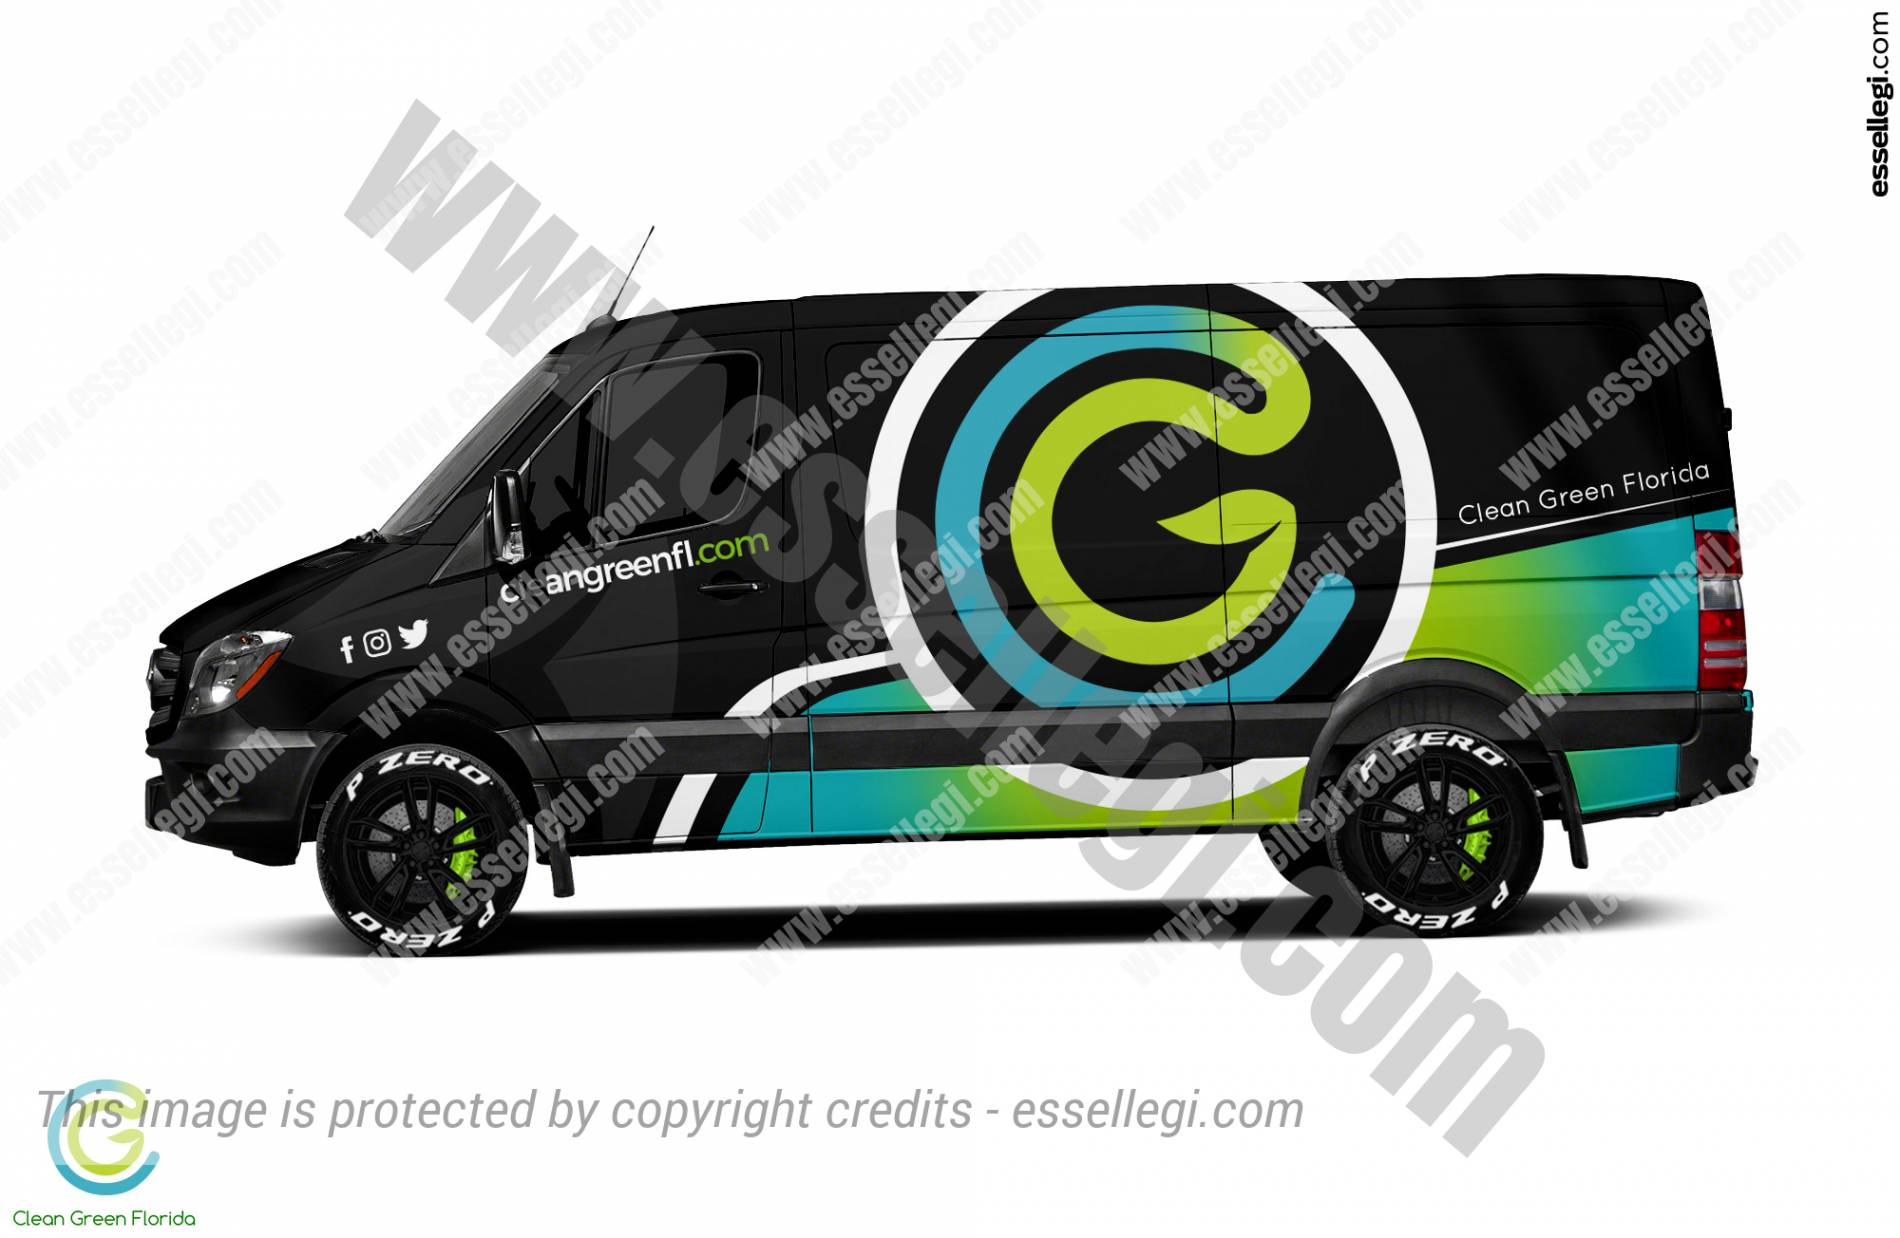 CLEAN GREEN FLORIDA | VAN WRAP DESIGN 🇺🇸